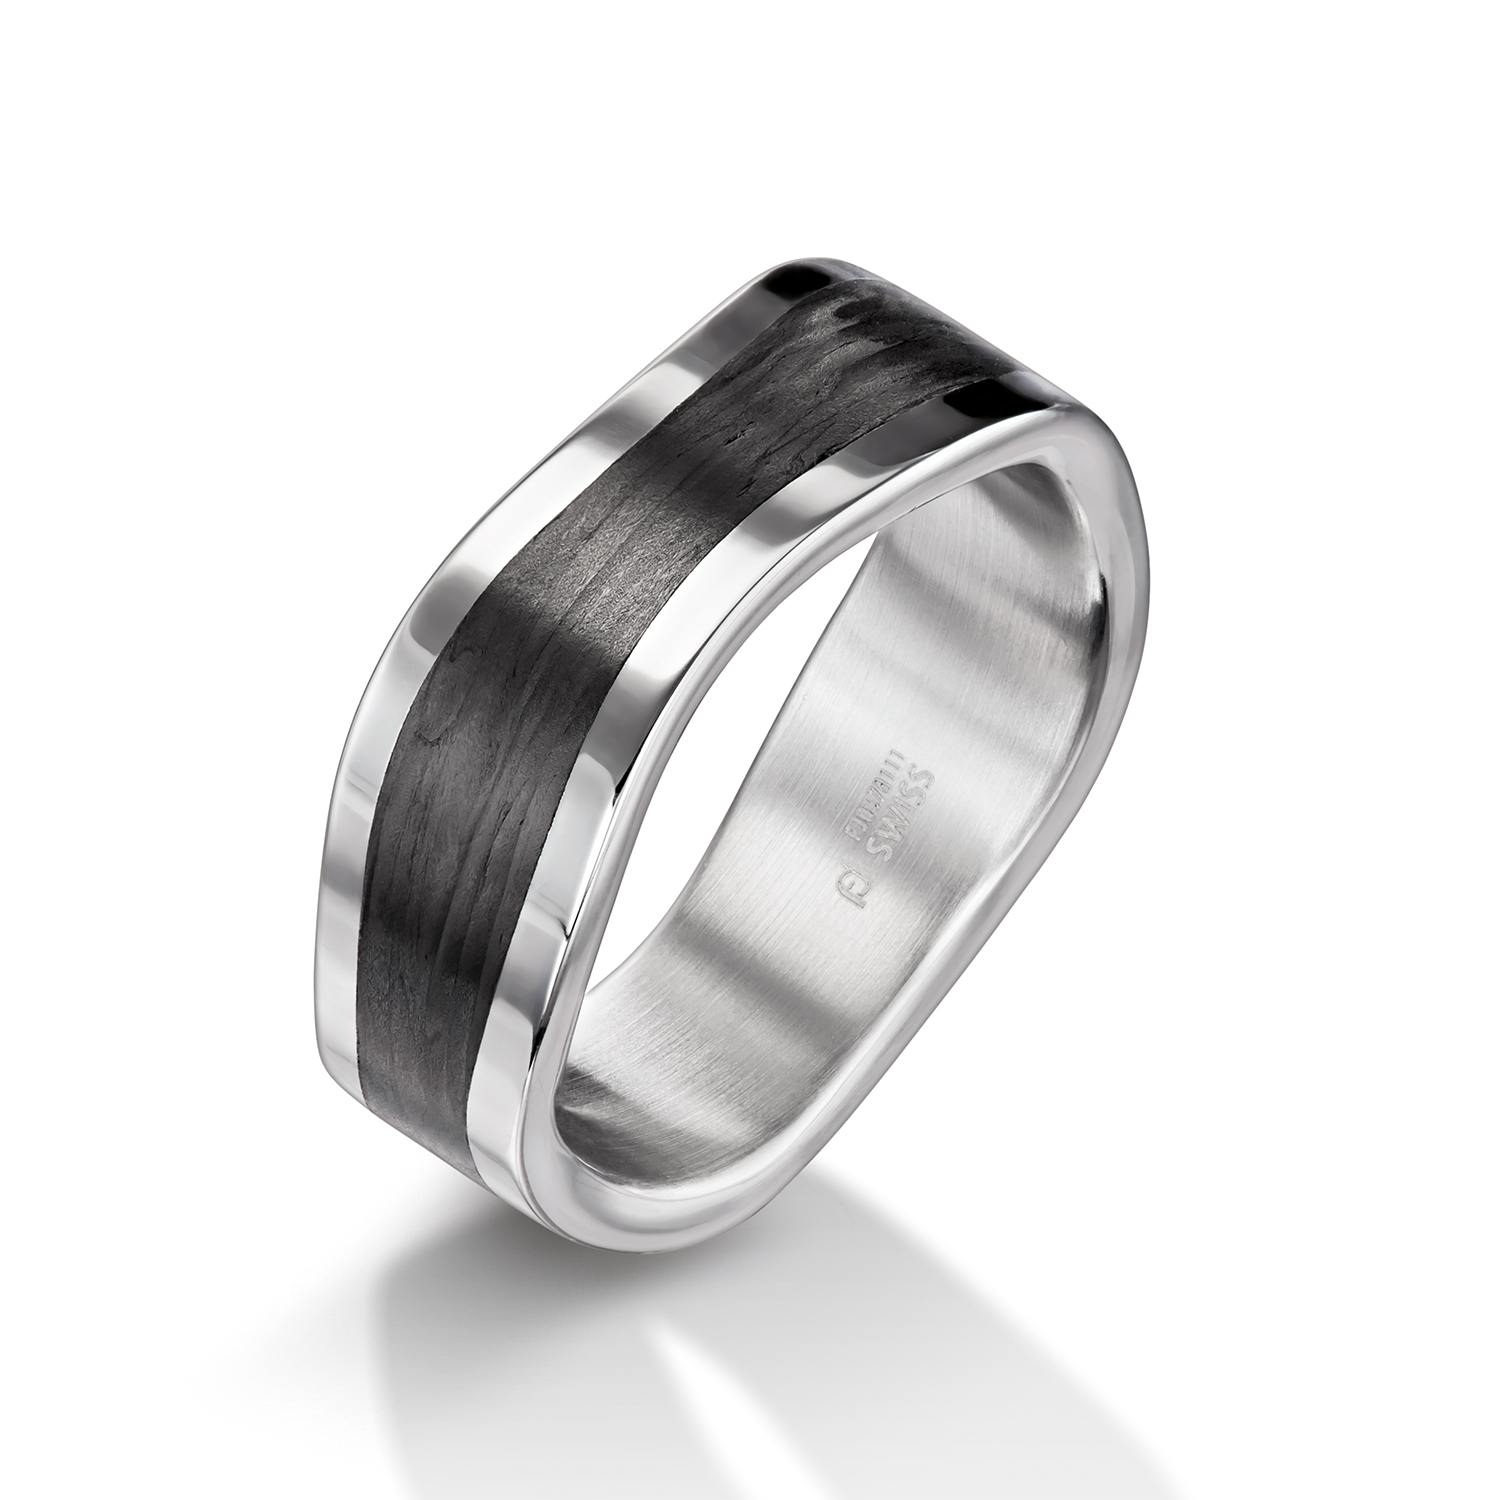 Man's world black wedding rings with carbon